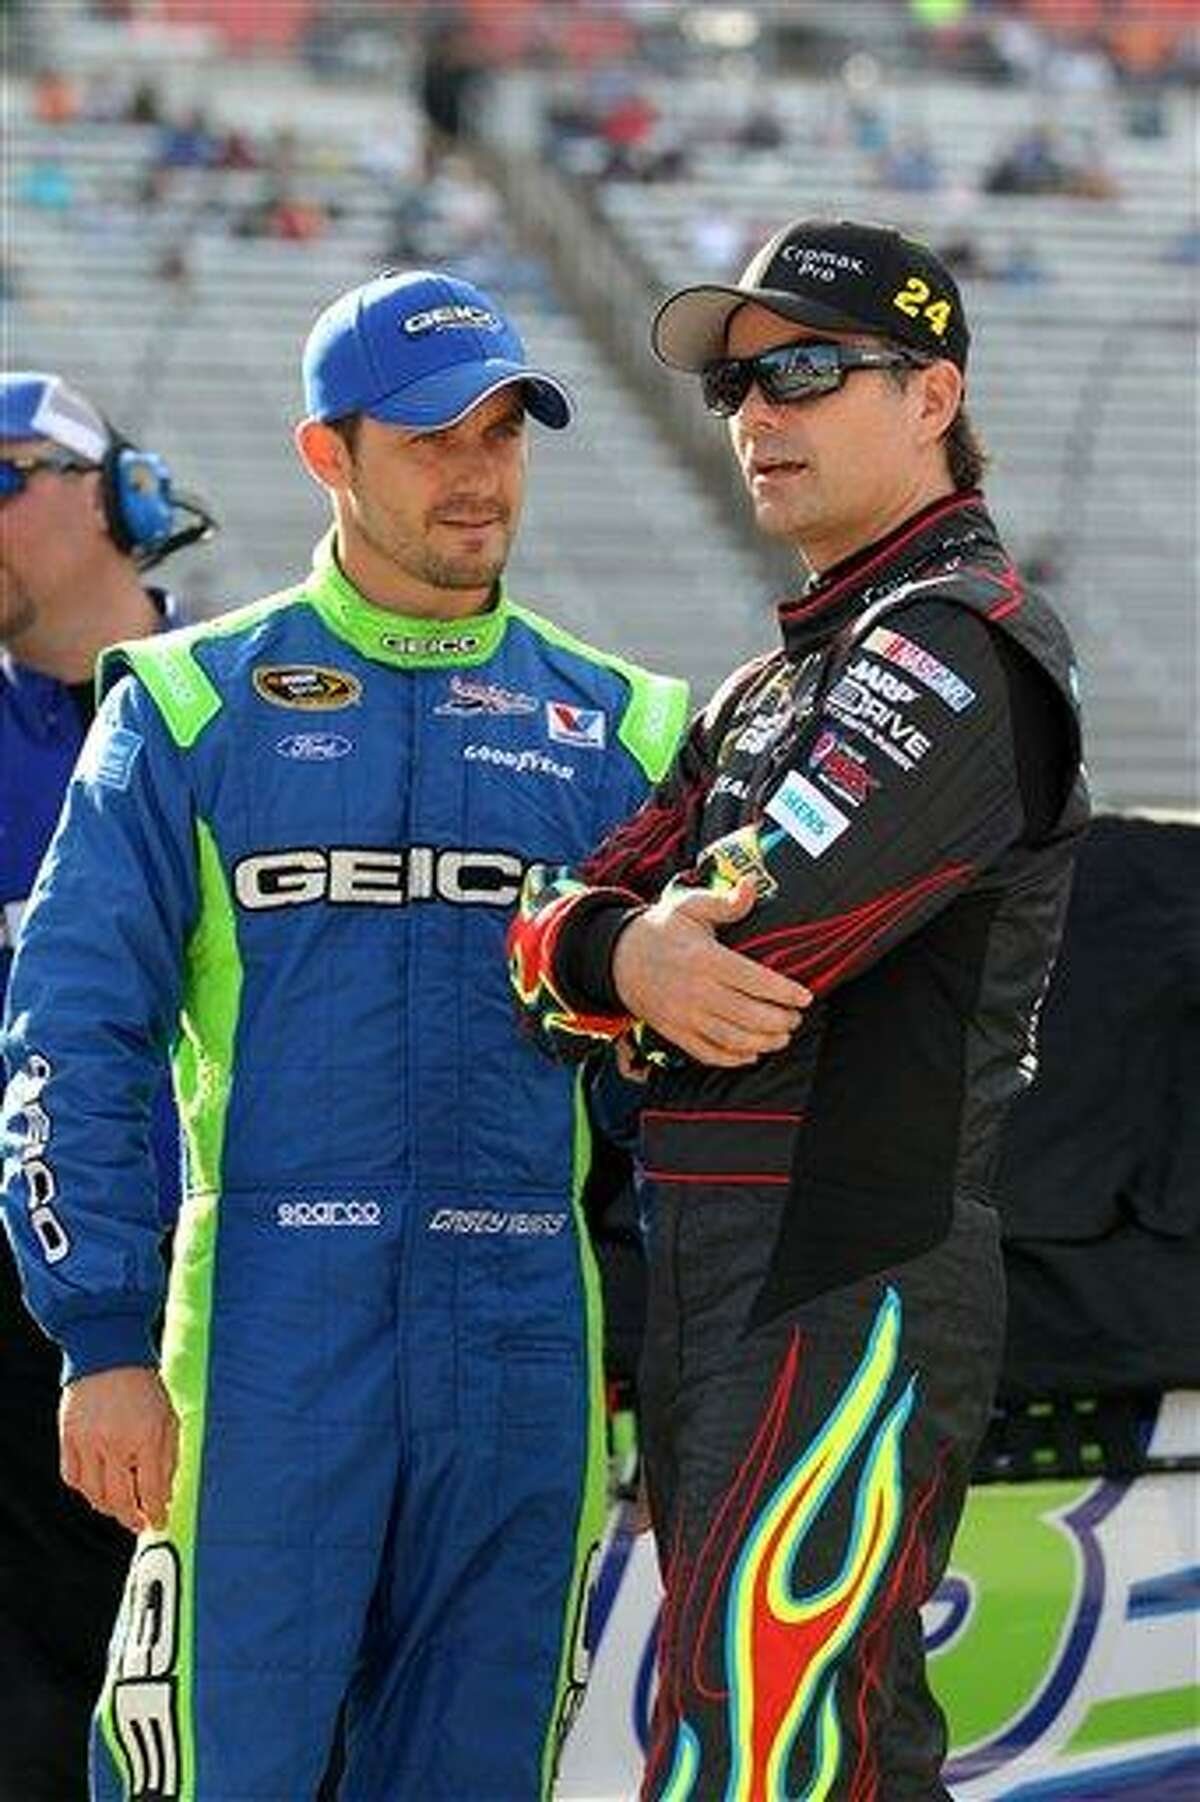 Casey Mears, left, and Jeff Gordon, right, talk as they stand by their cars on pit road during qualifying for the NASCAR Sprint Cup Series NRA 500 auto race at Texas Motor Speedway, Friday April 12, 2013, in Fort Worth, Texas. (AP Photo/Tim Sharp)